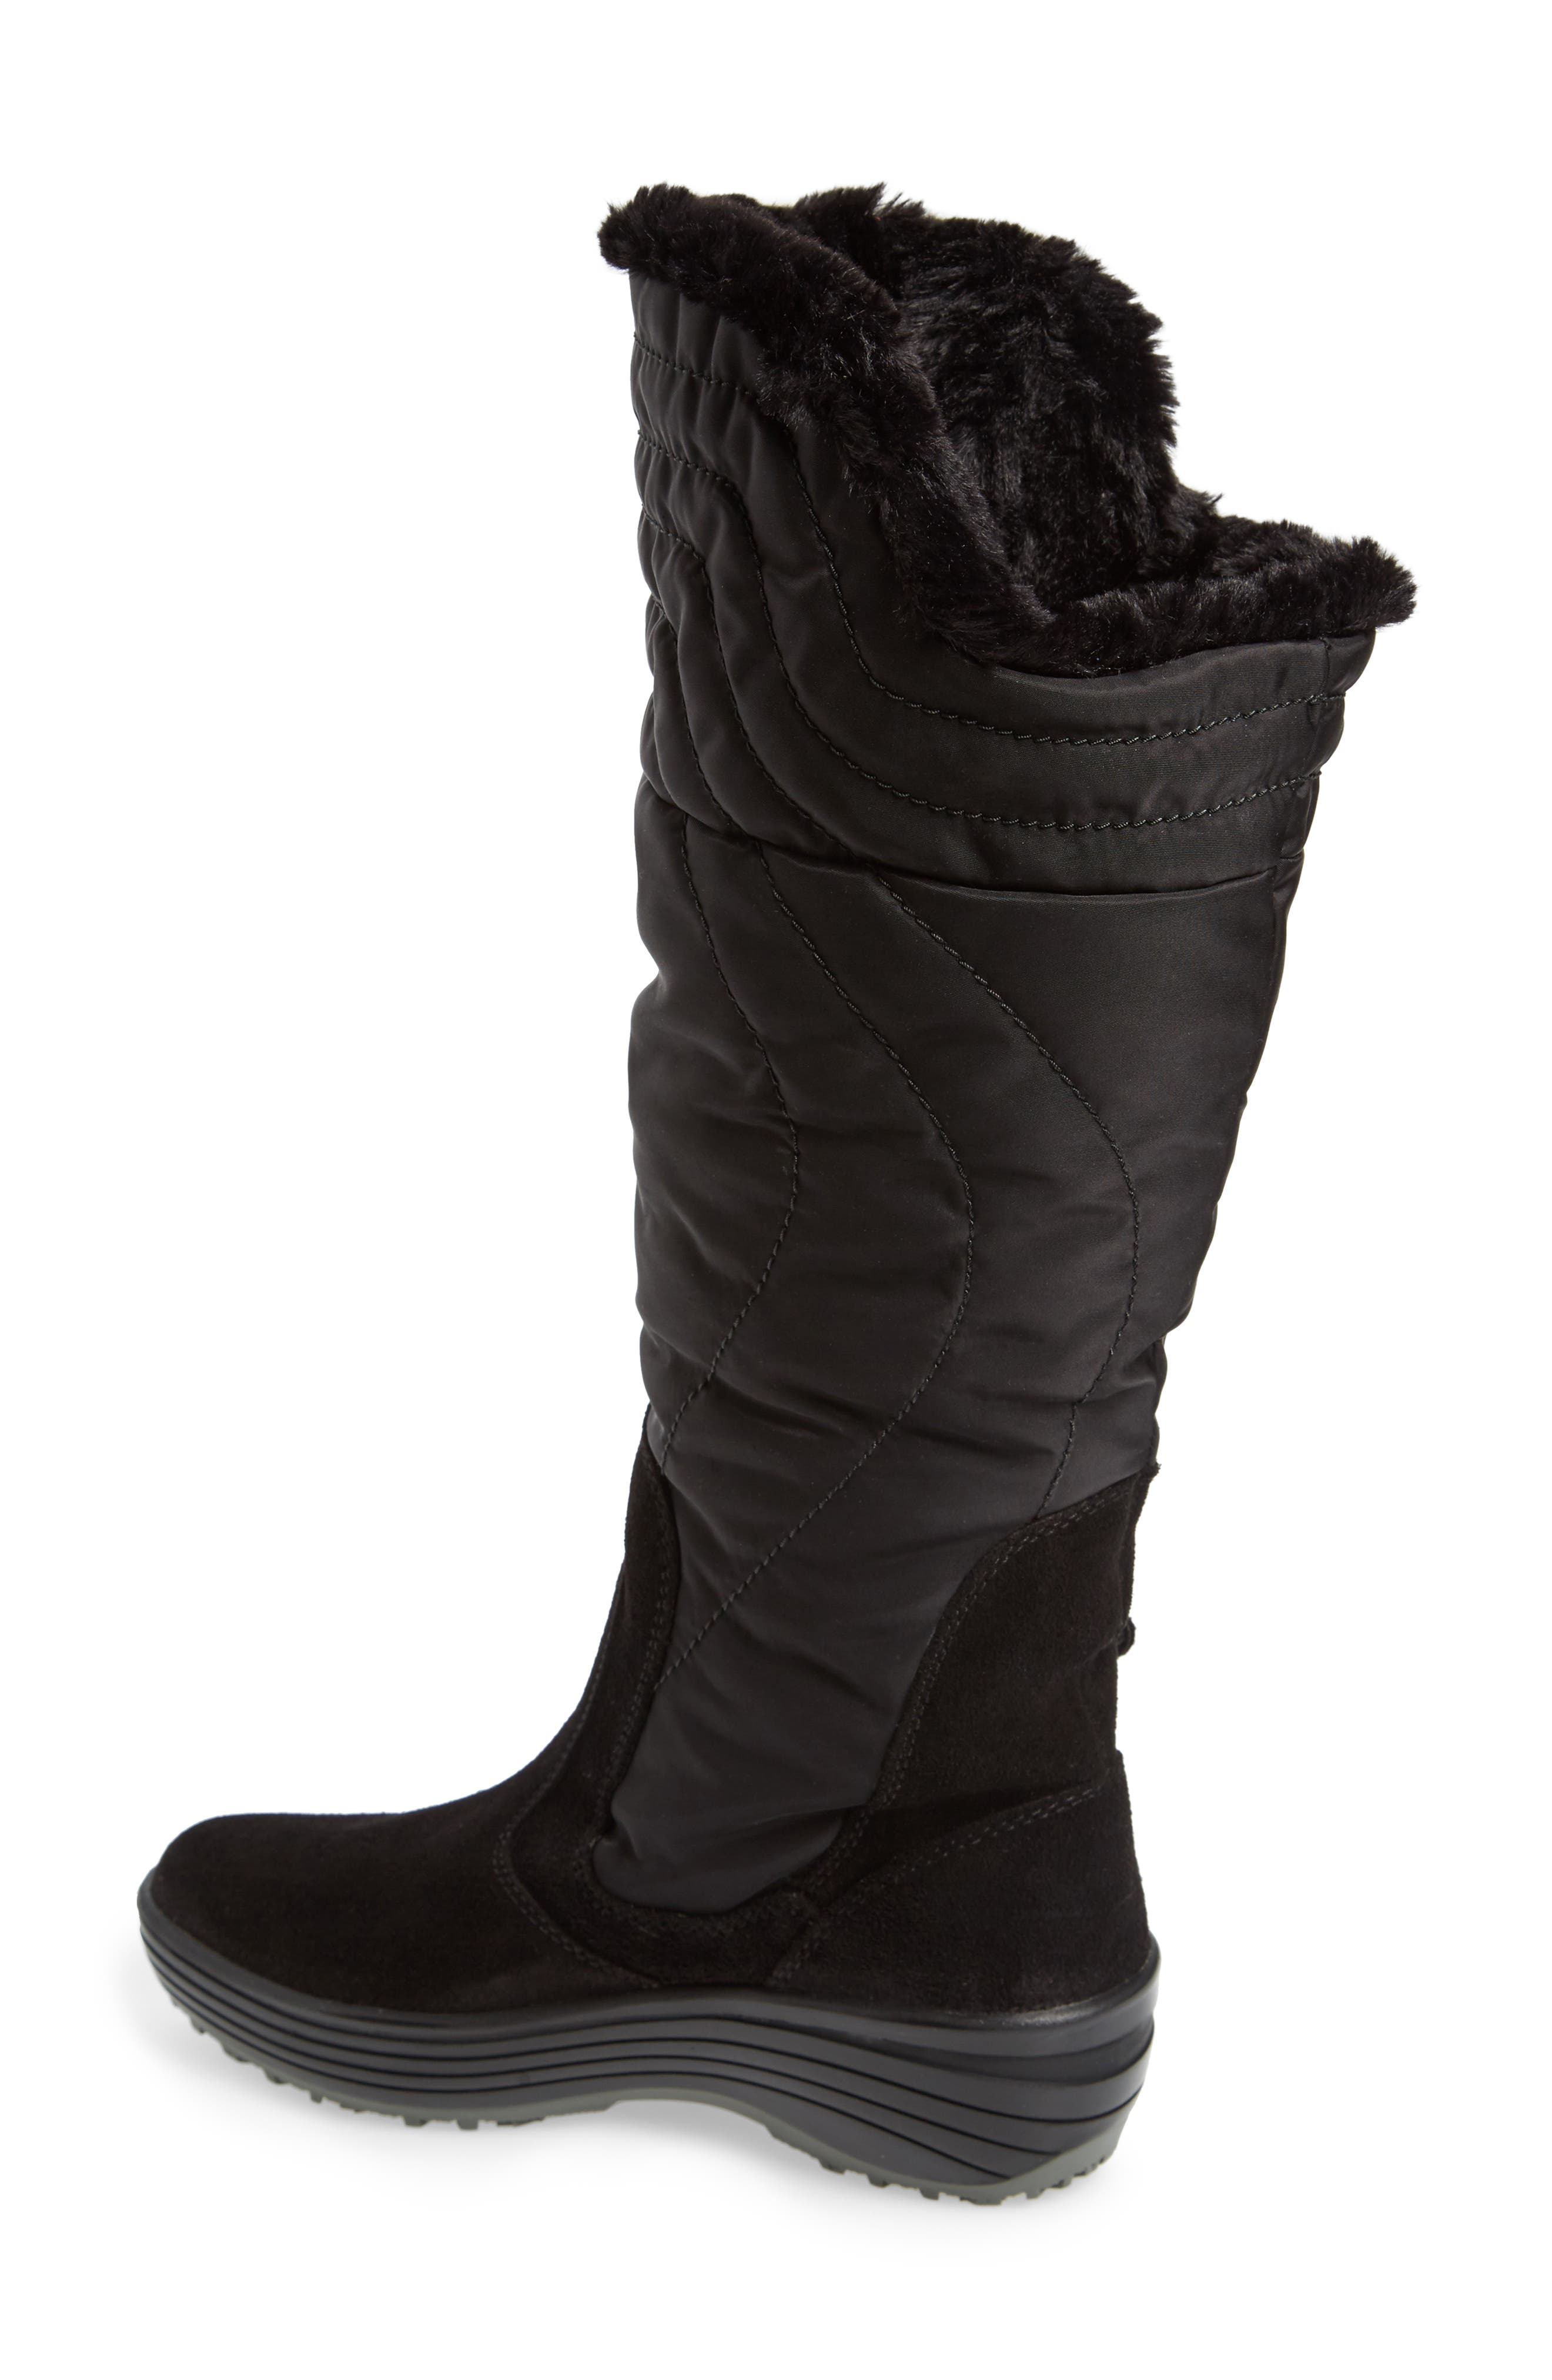 Natasha Faux Fur Lined Waterproof Boot,                             Alternate thumbnail 2, color,                             Black Suede